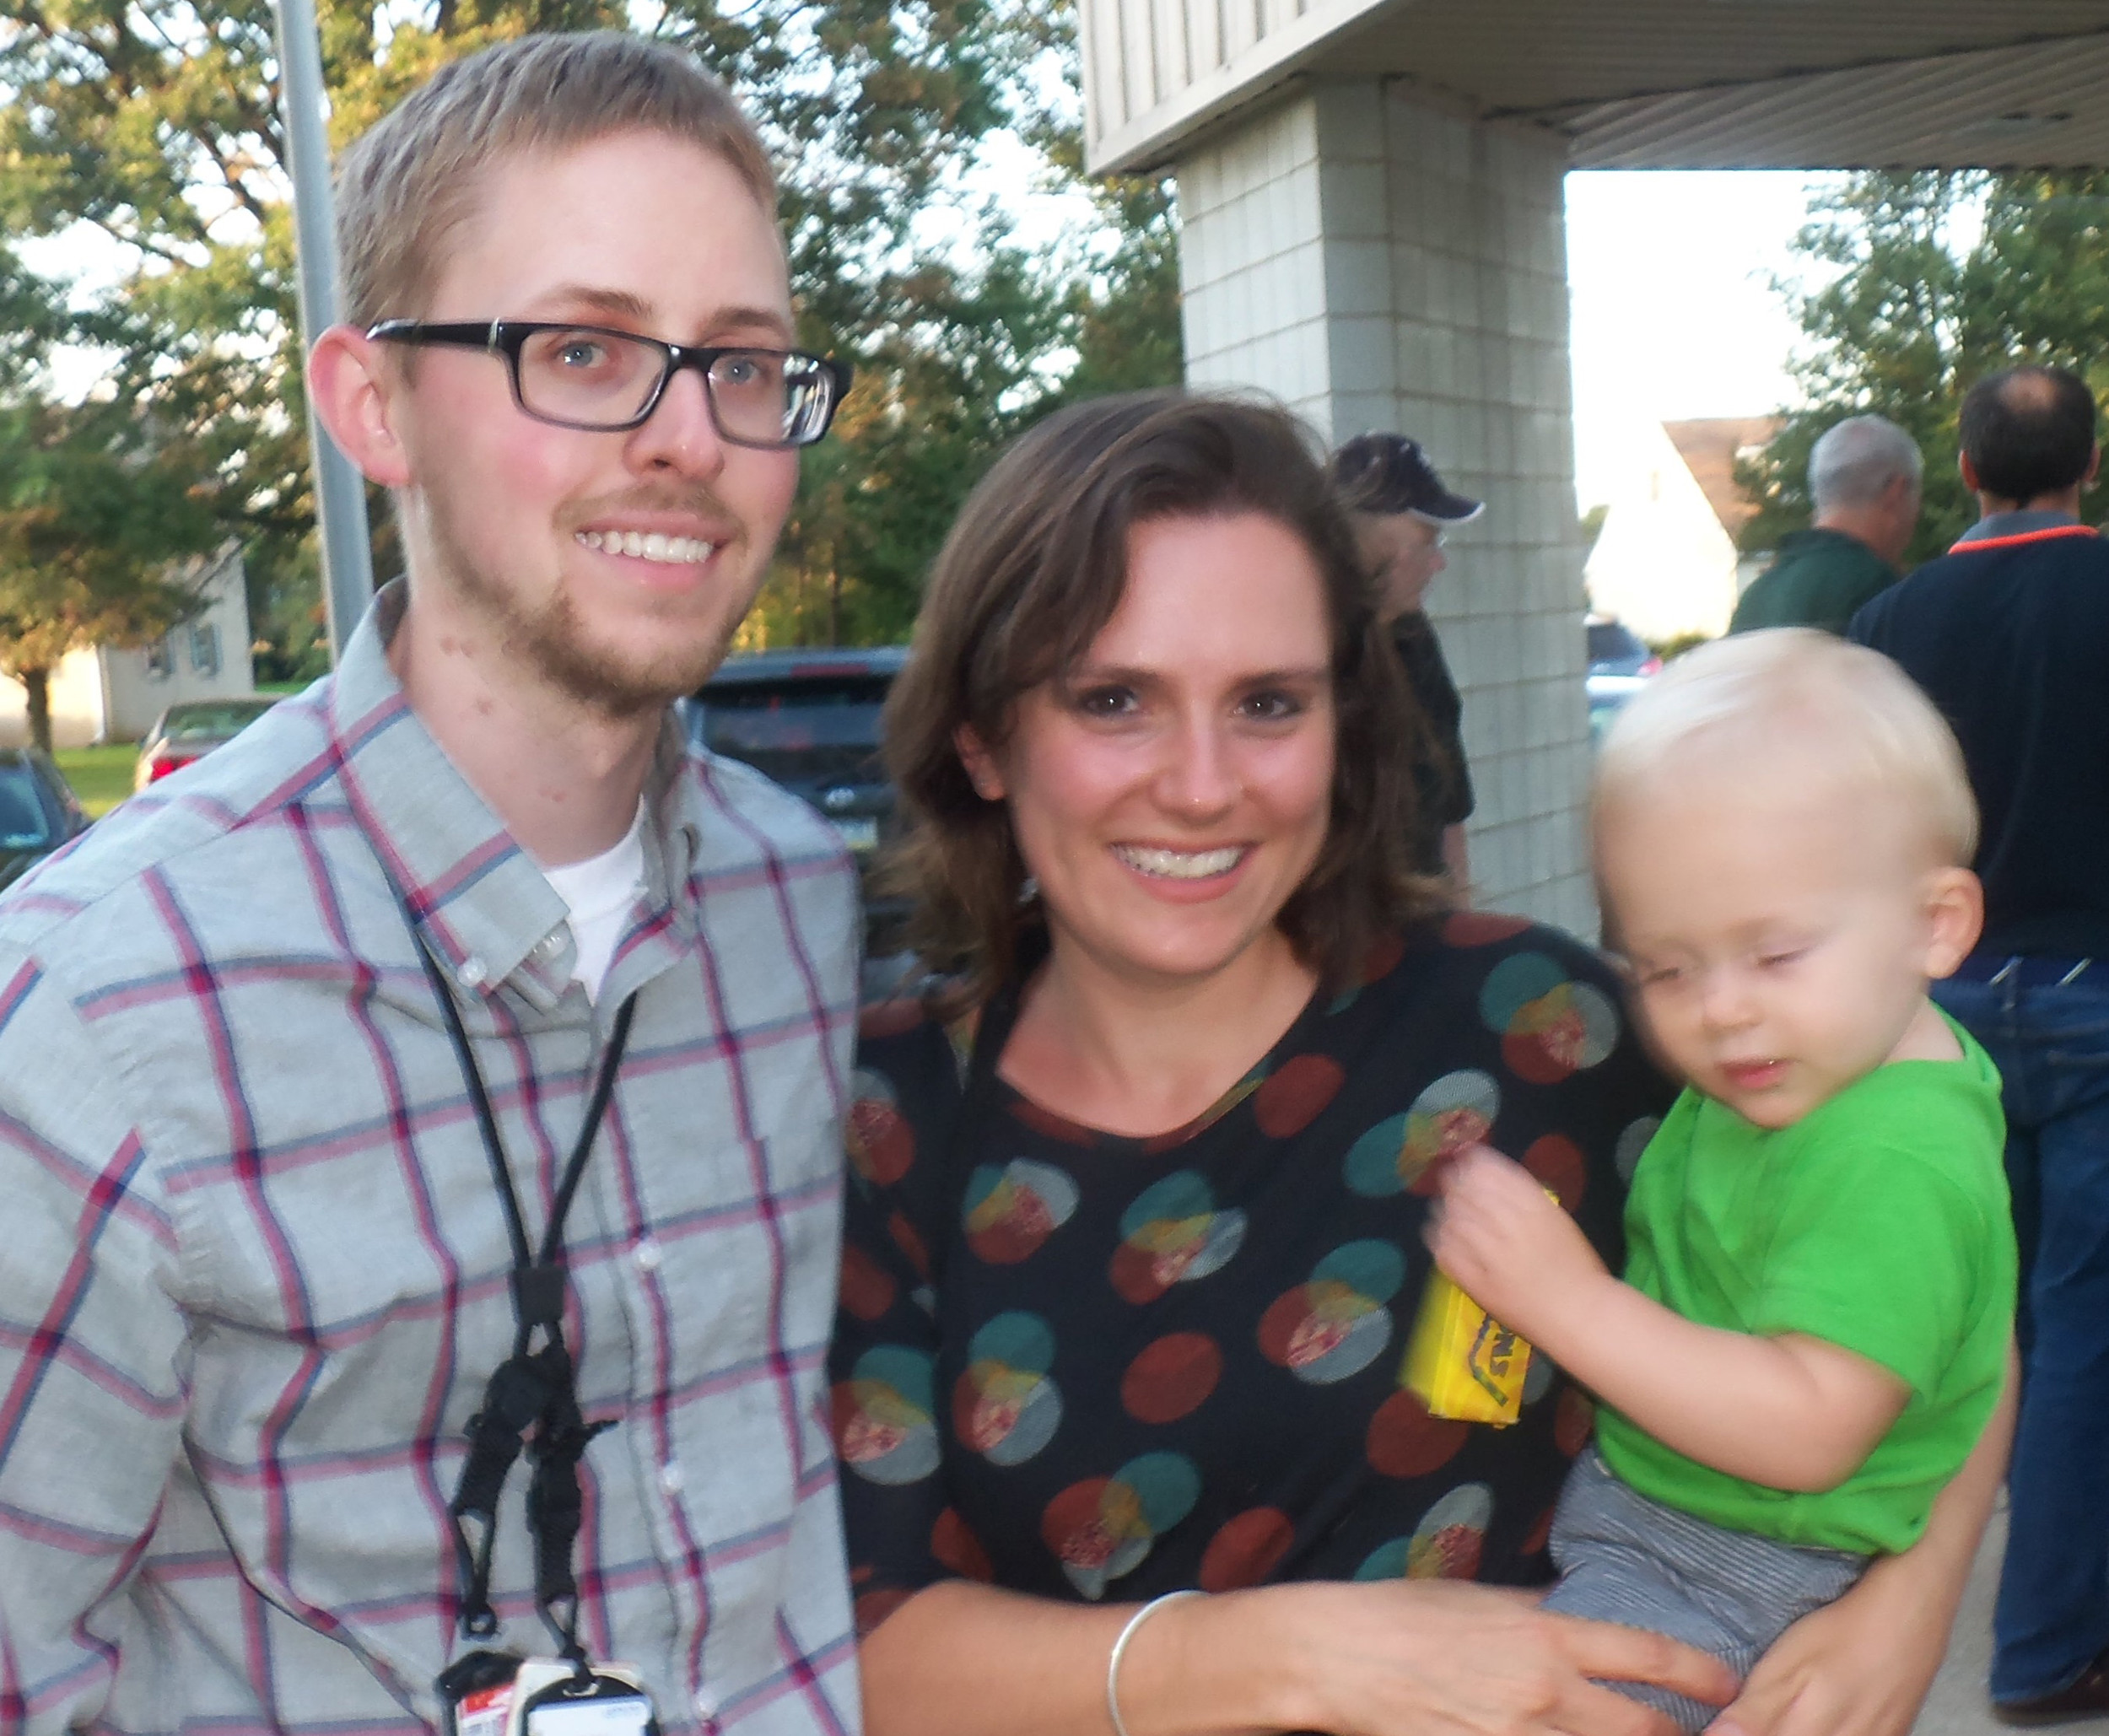 Ross Shacklett of Mount Joy visits Three Mile Island Generating Station's Community Information Night with wife Kaite and son Ryan, 14 months, on Sept. 7.